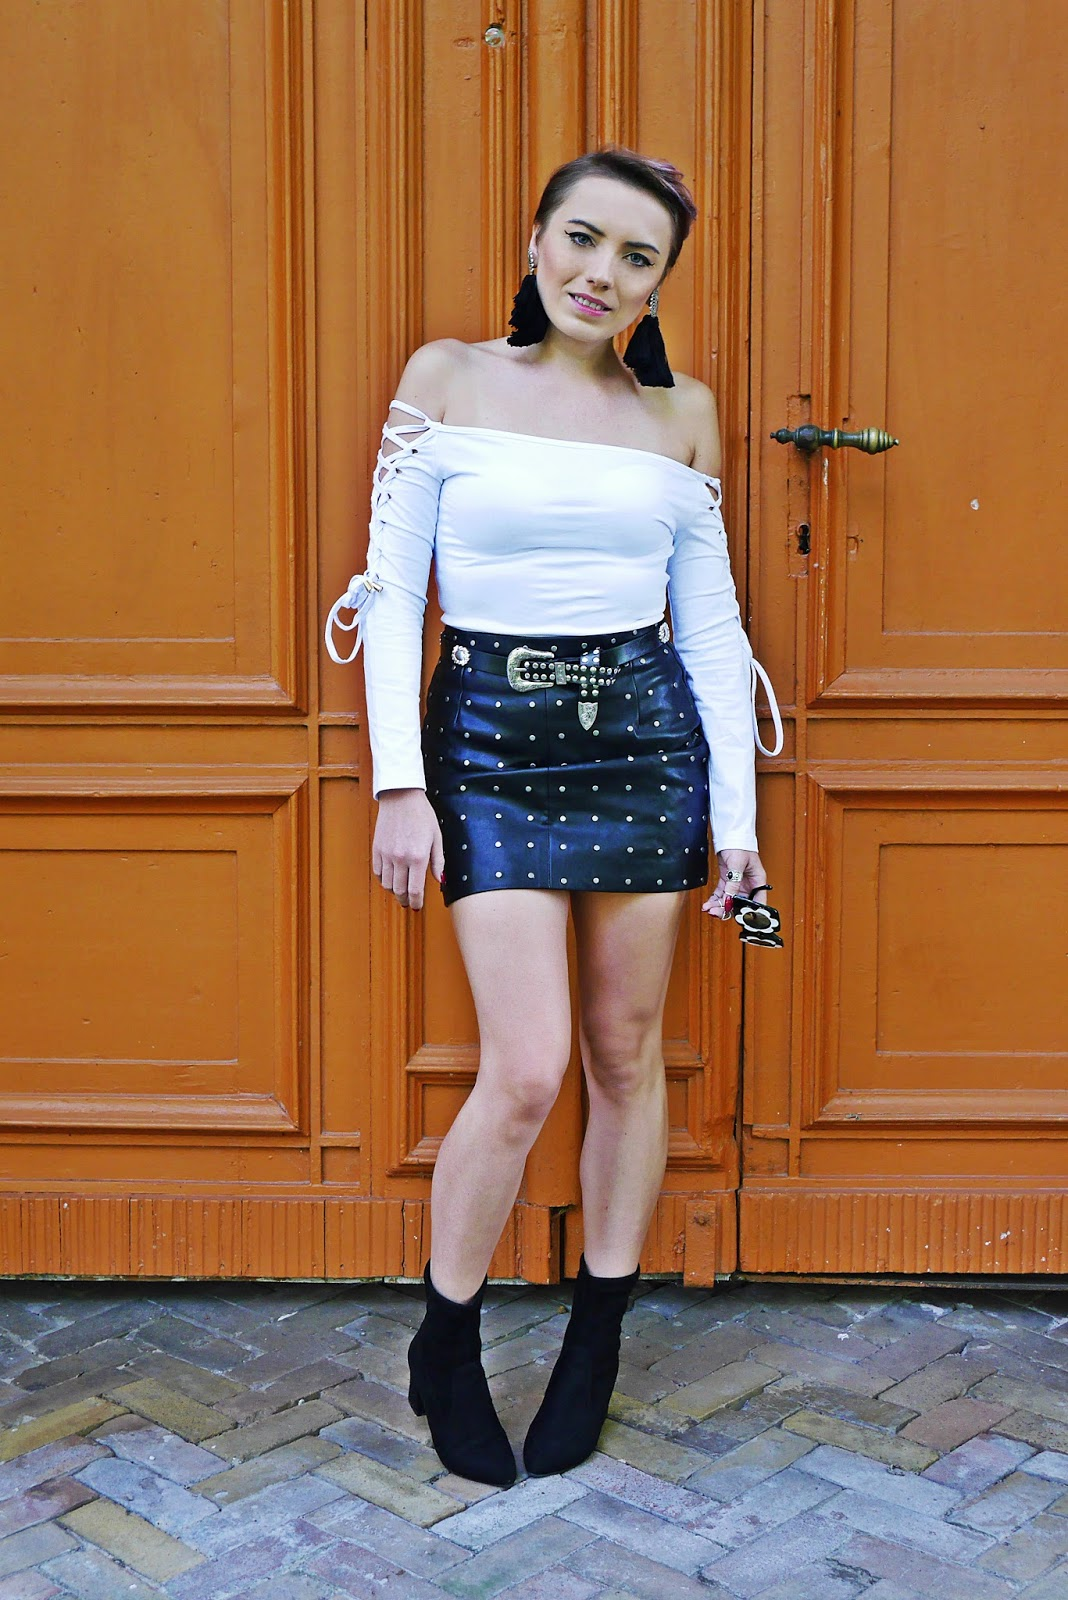 4_flower_sunglass_leather_skirt_socks_shoes_belt_white_top_karyn_blog_modowy_110917aa